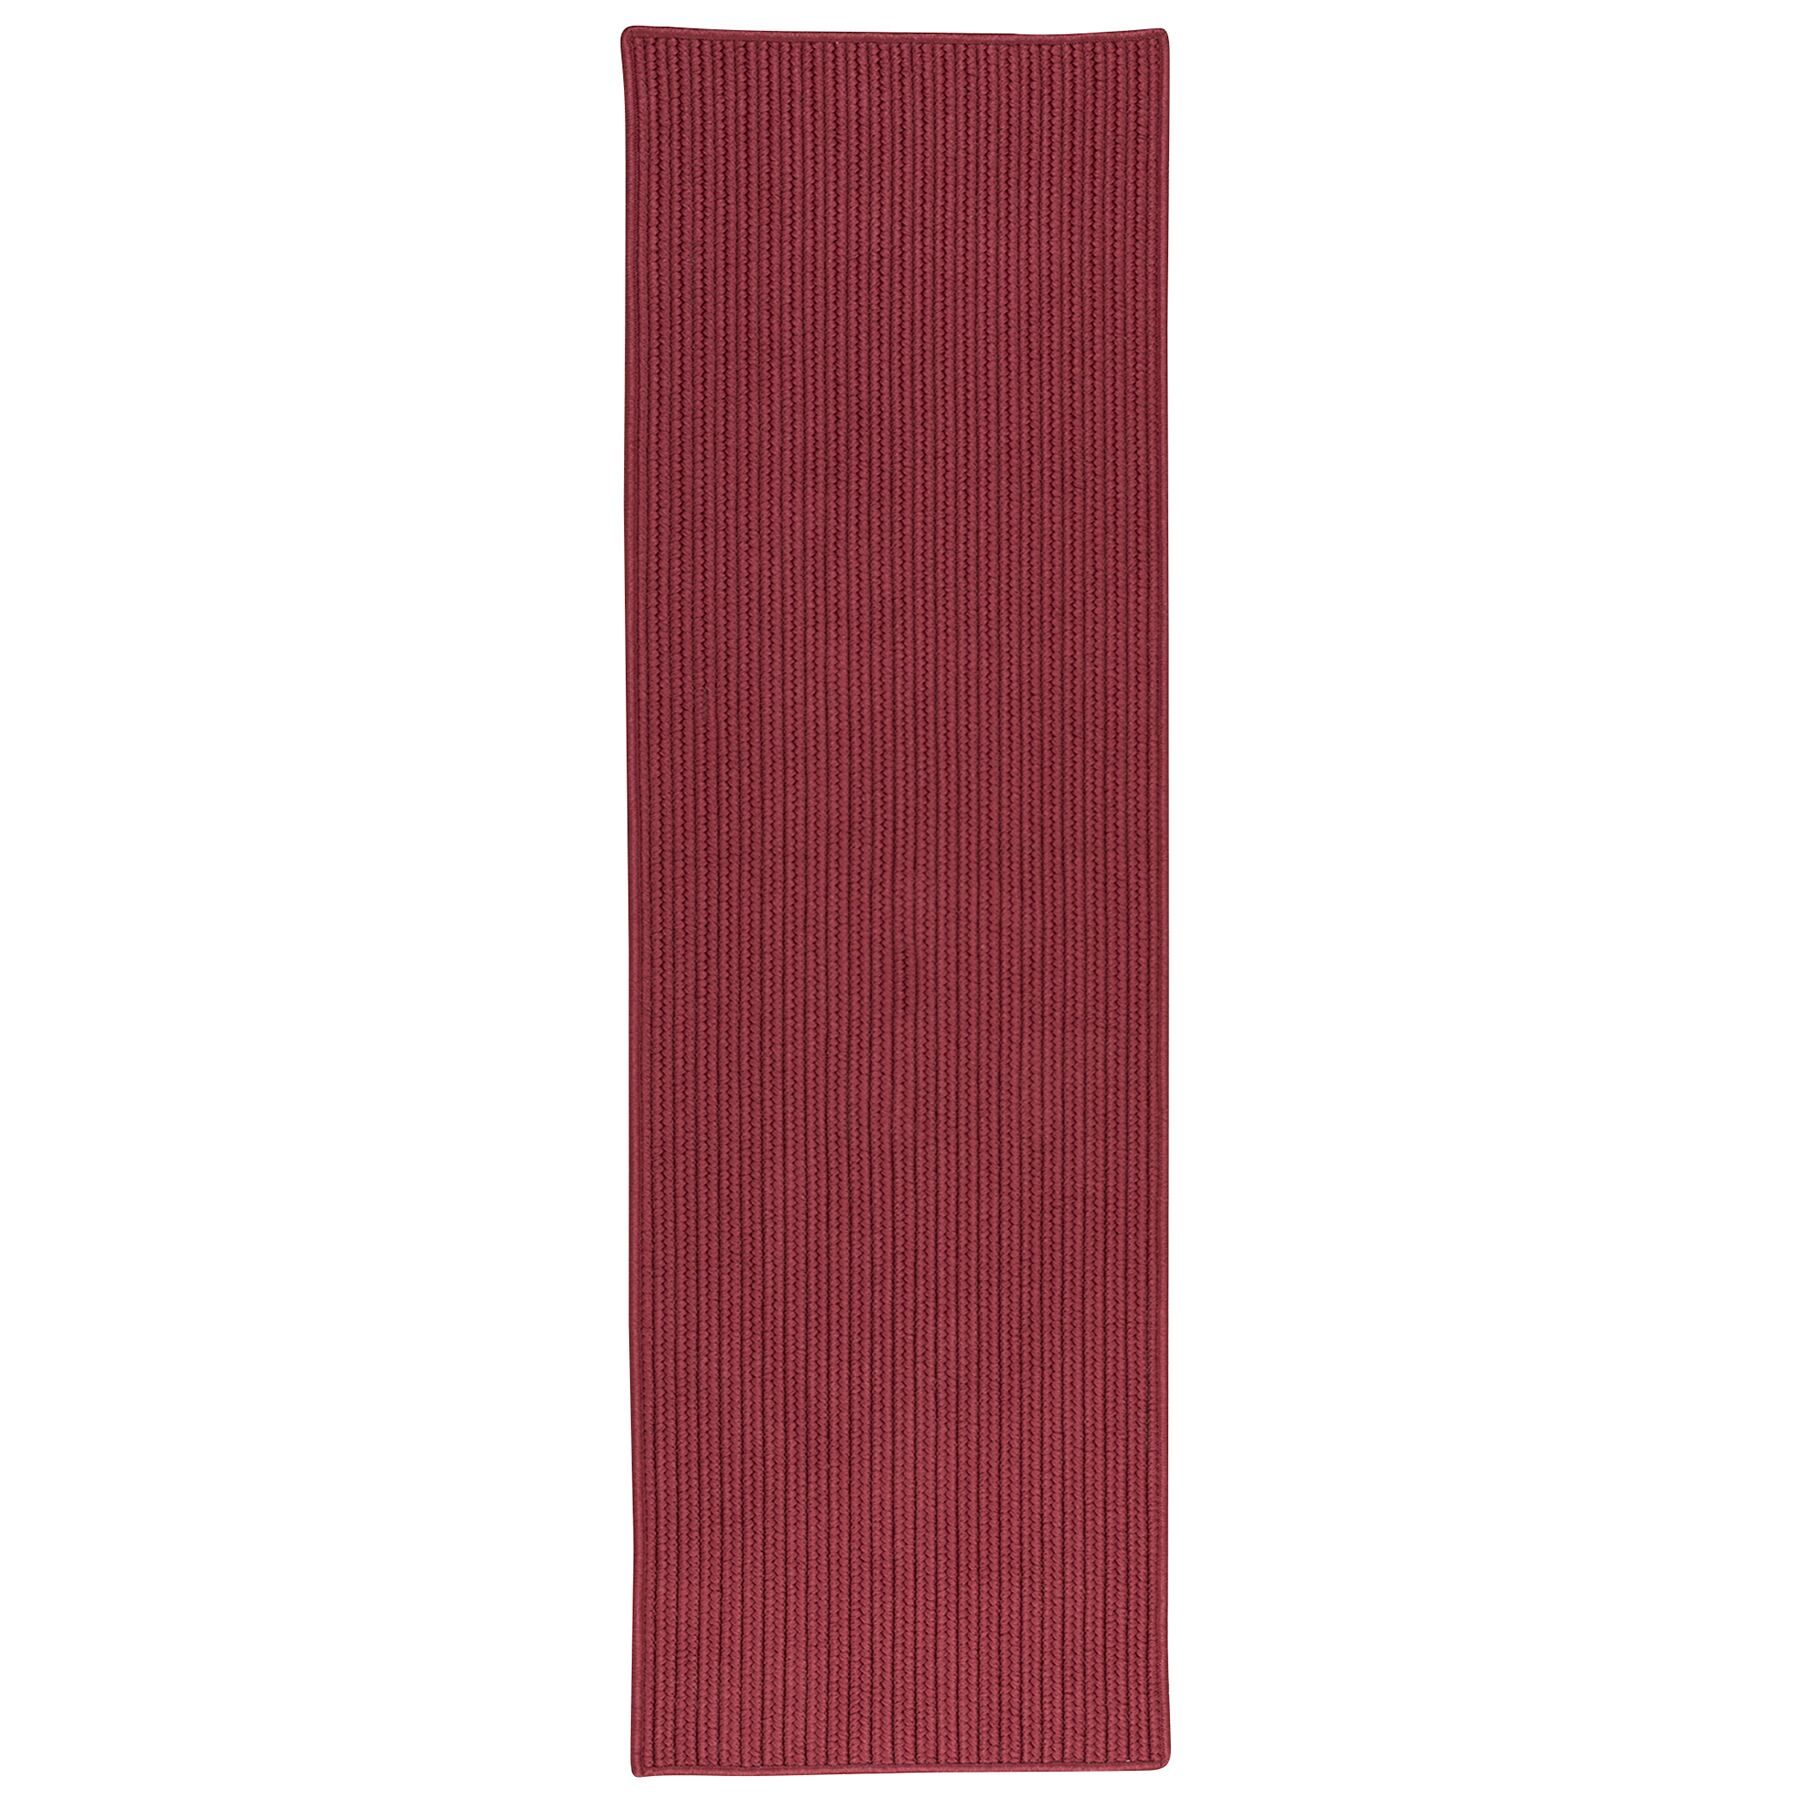 Carissa All-Purpose Mudroom Hand-Braided Brick Red Area Rug Rug Size: Runner 2'5